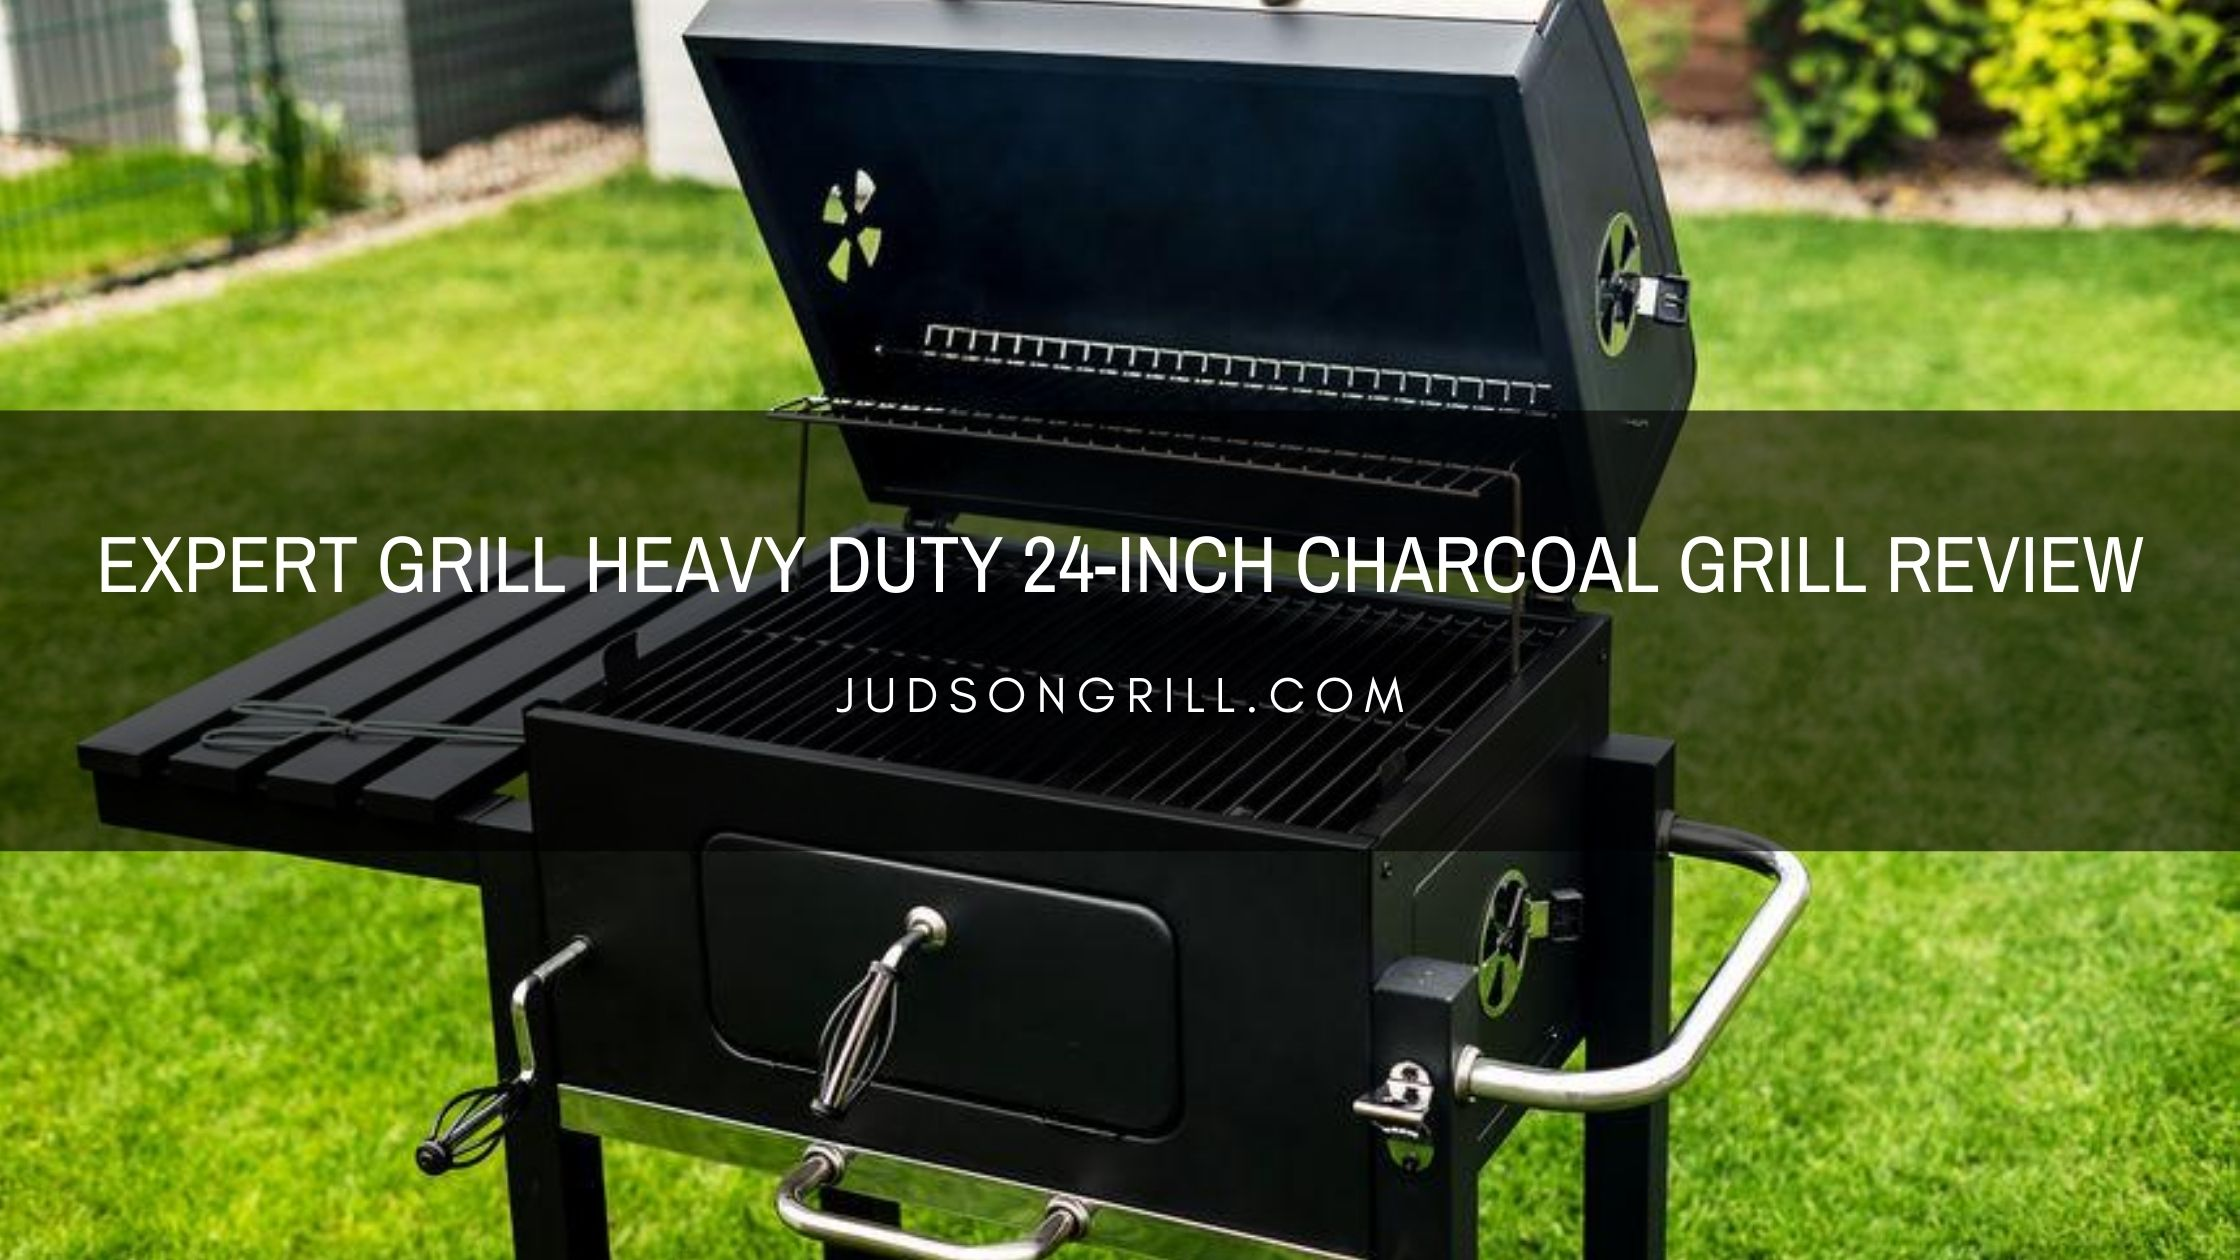 Grill 24 Expert Grill Heavy Duty 24 Inch Charcoal Grill Review ...